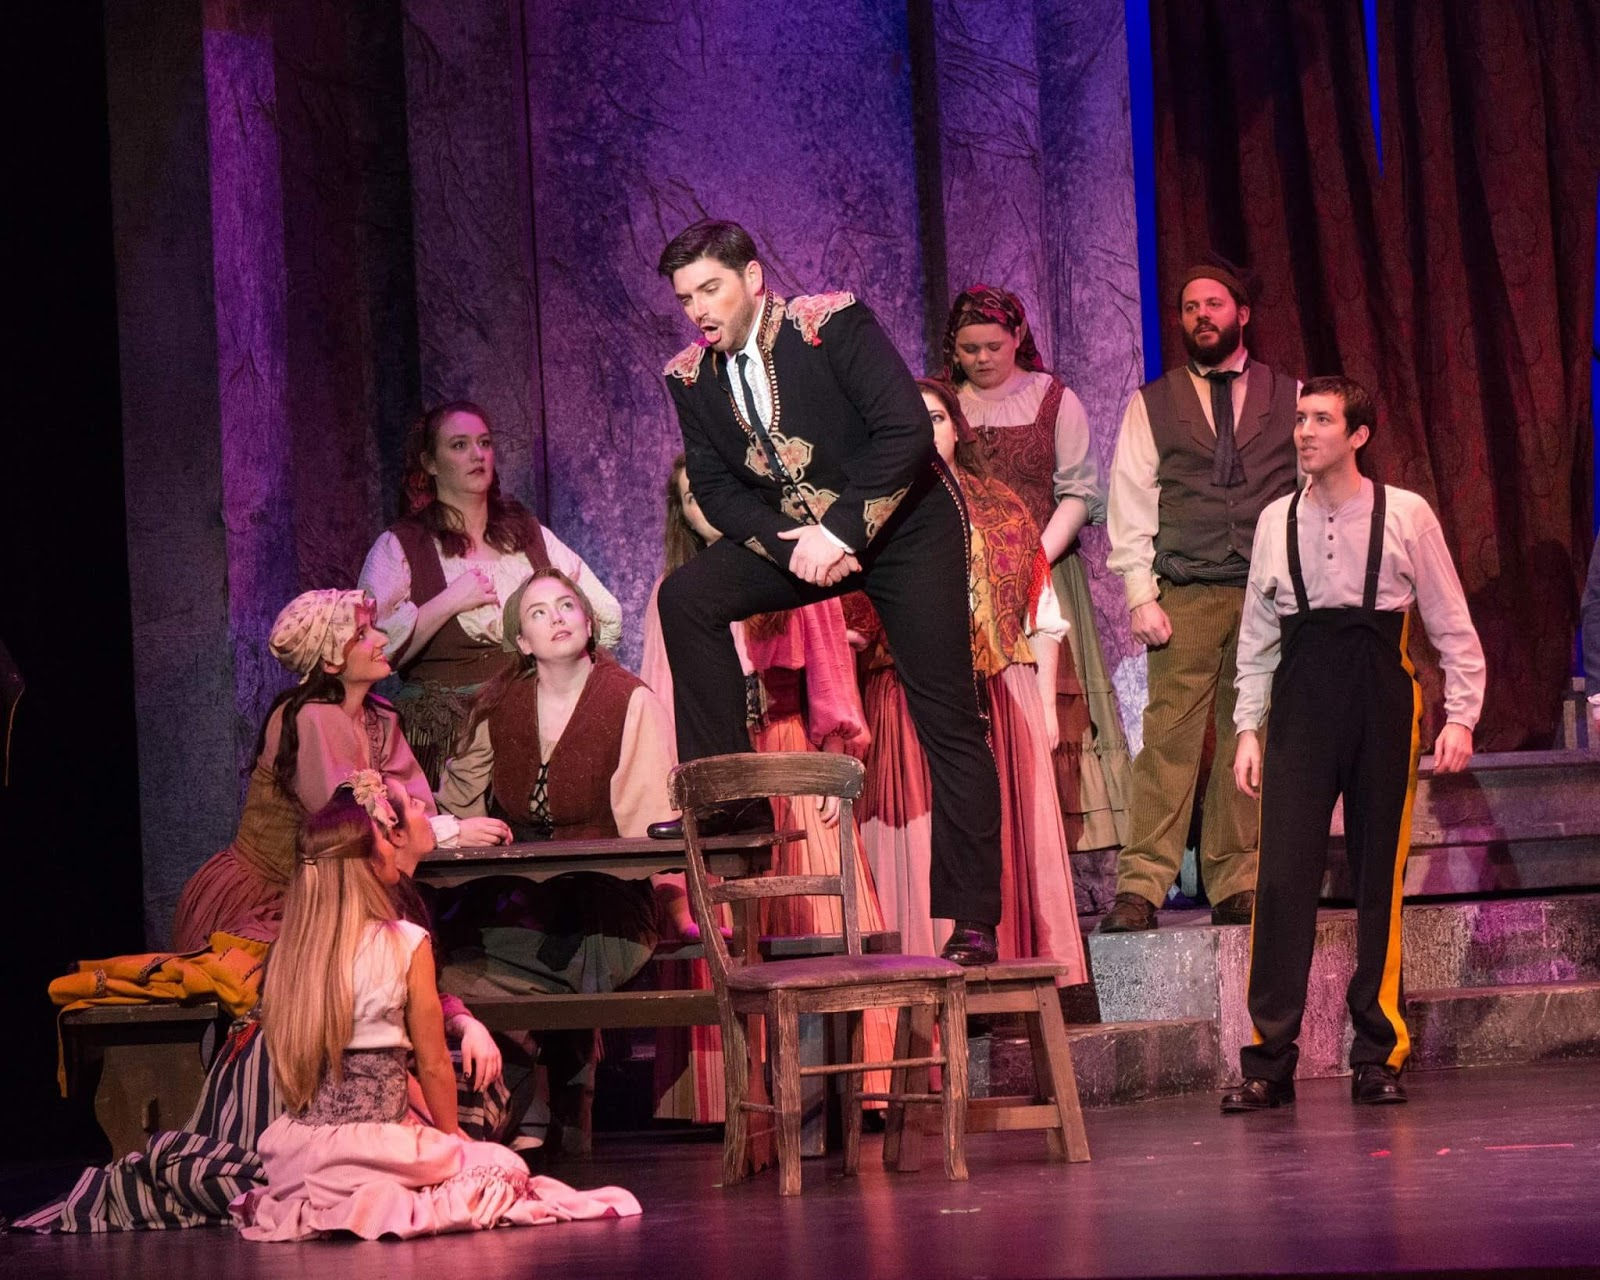 IN PERFORMANCE: Baritone DAVID PERSHALL as Escamillo (center) in Greensboro Opera's production of Georges Bizet's CARMEN, January 2017 [Photo © by Greensboro Opera]